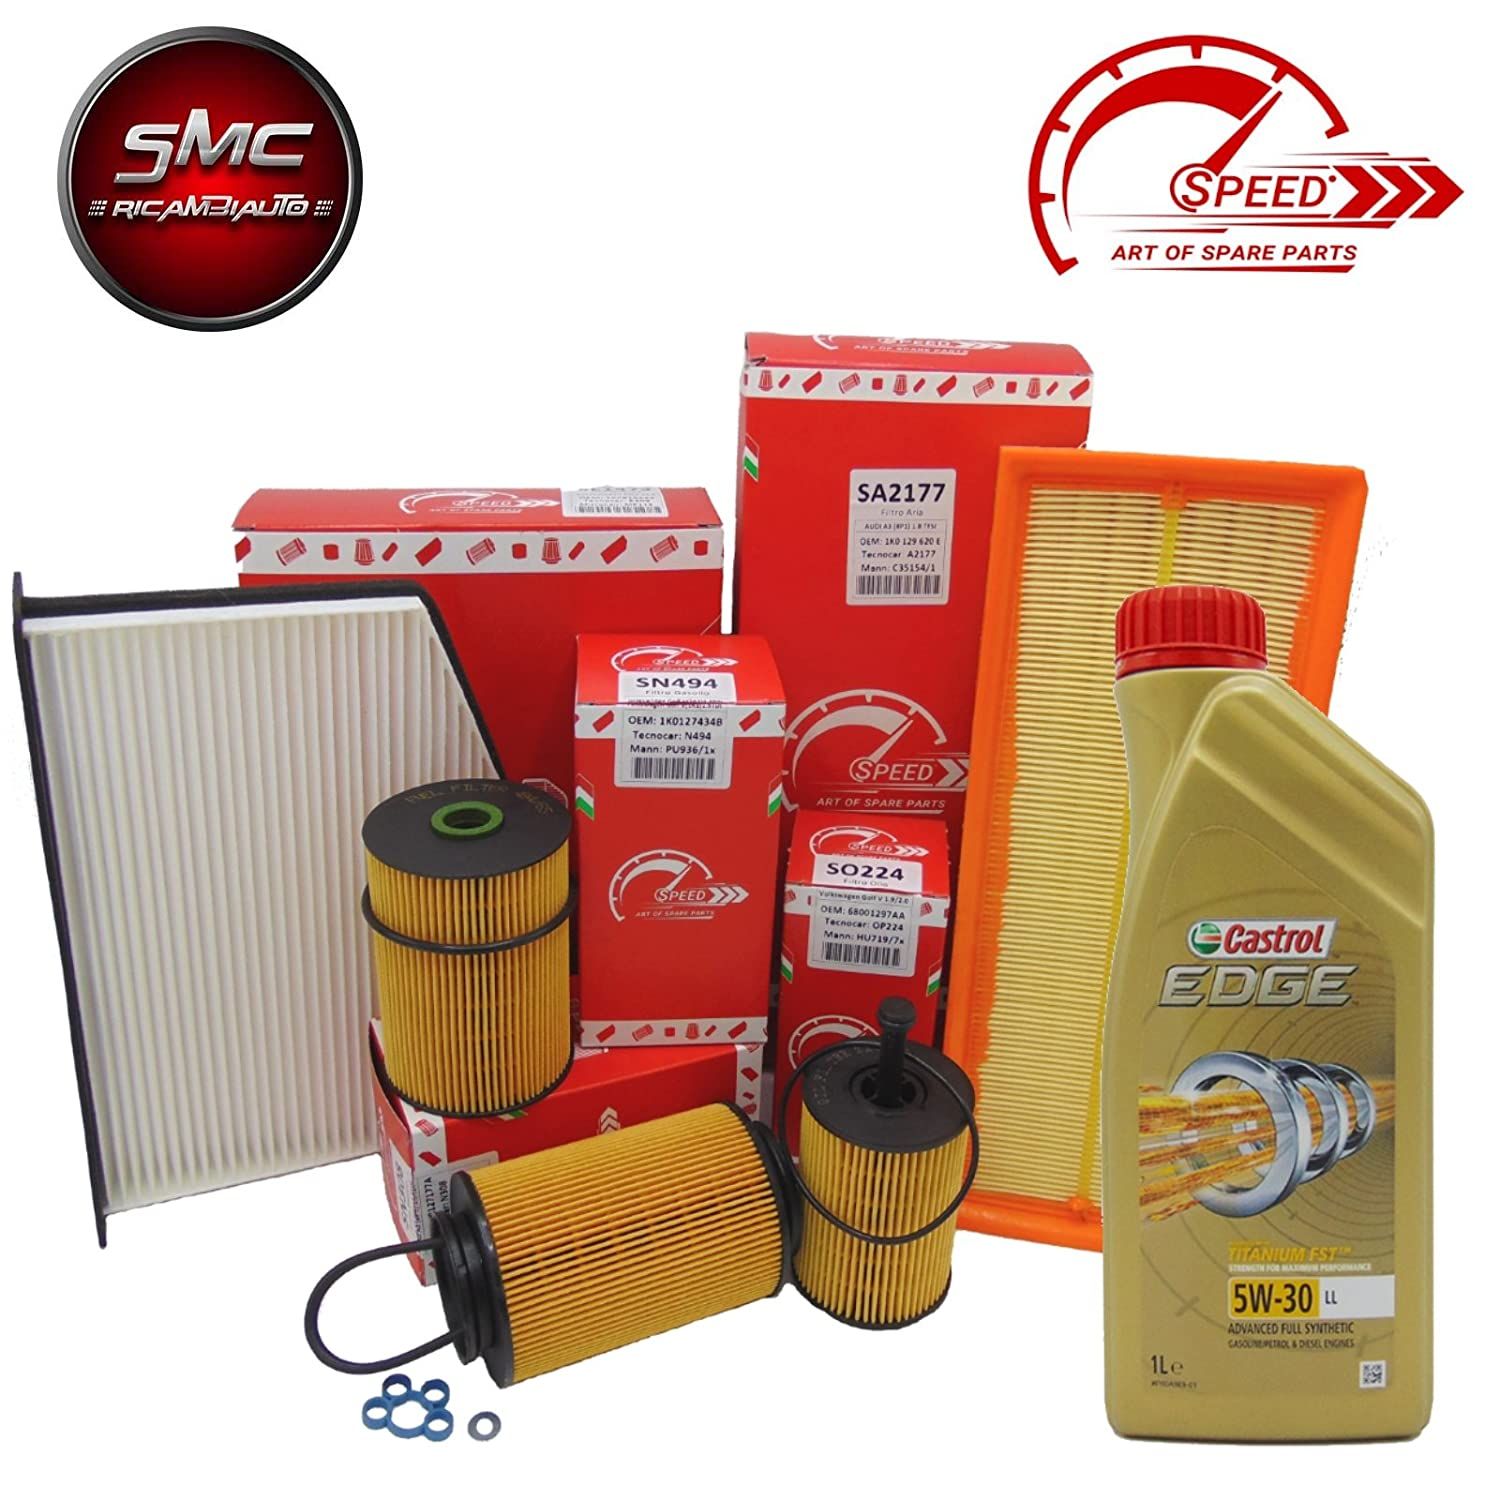 Kit de mantenimiento con 4  filtros originales Speed by SMC + 5  litros de aceite de motor Castrol Edge 5  W30  (so224  O so412, sa2276, srn491, se1564)